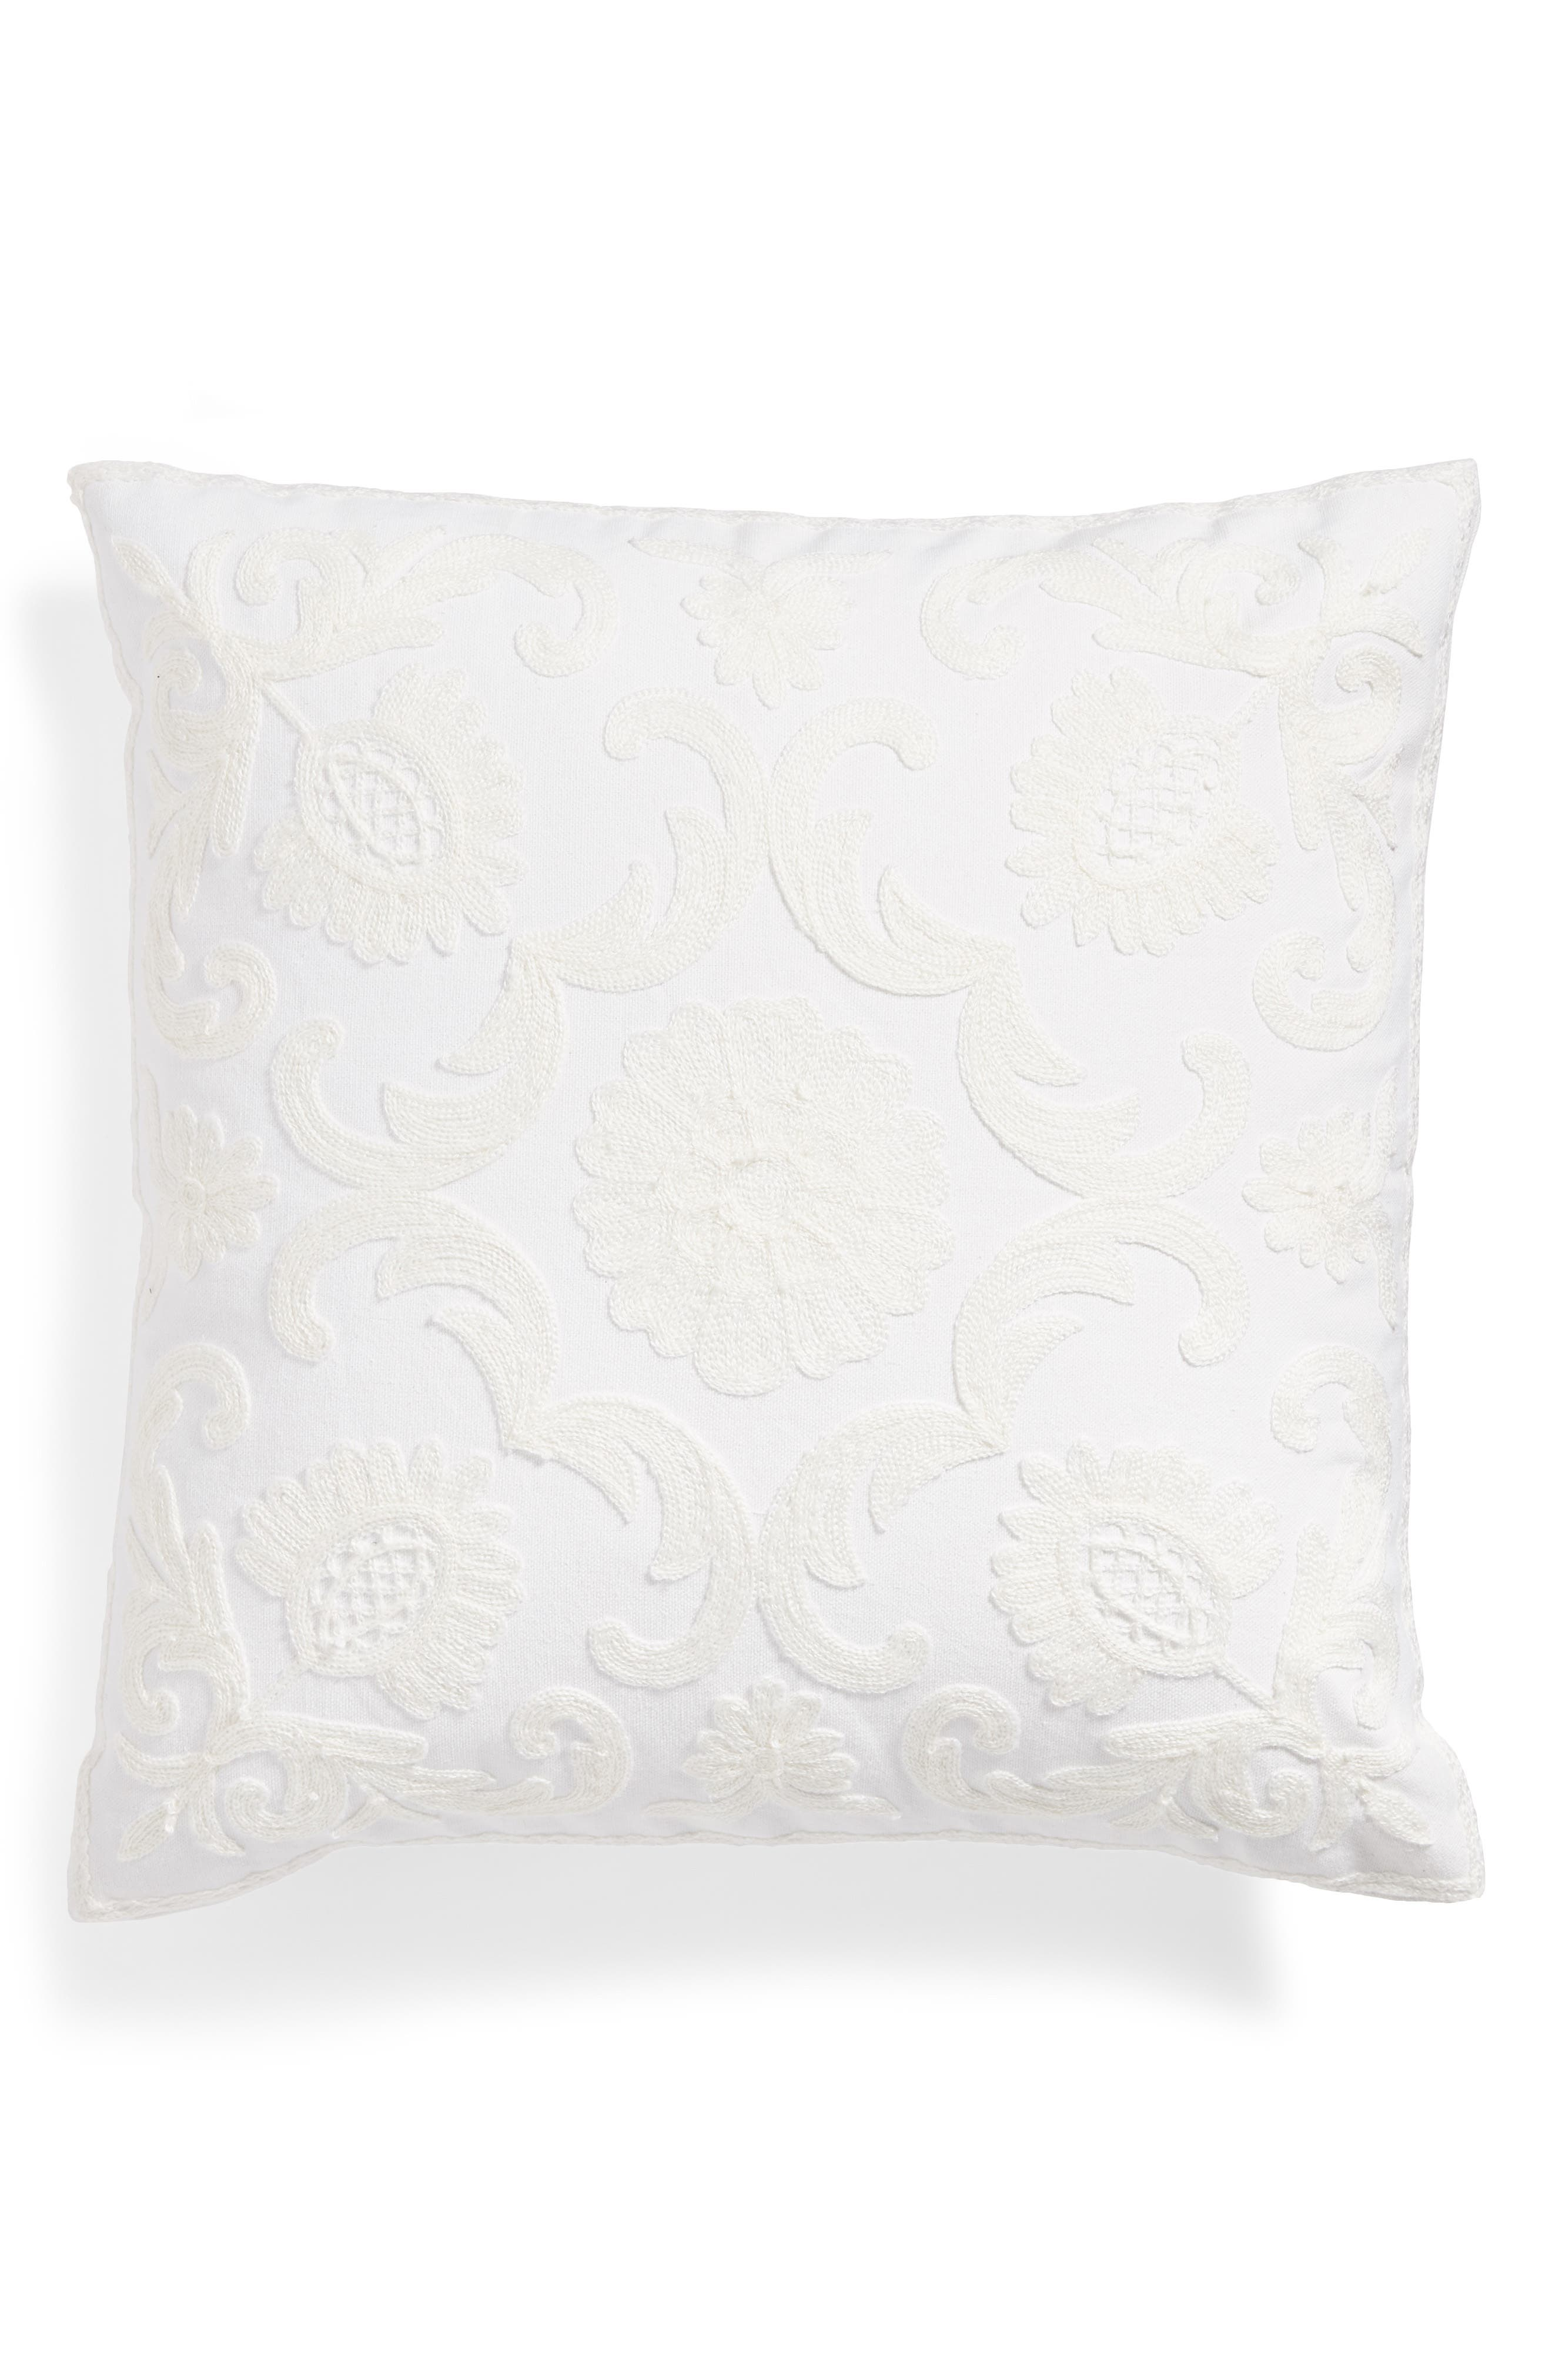 Bree Embroidered Accent Pillow,                             Main thumbnail 1, color,                             White